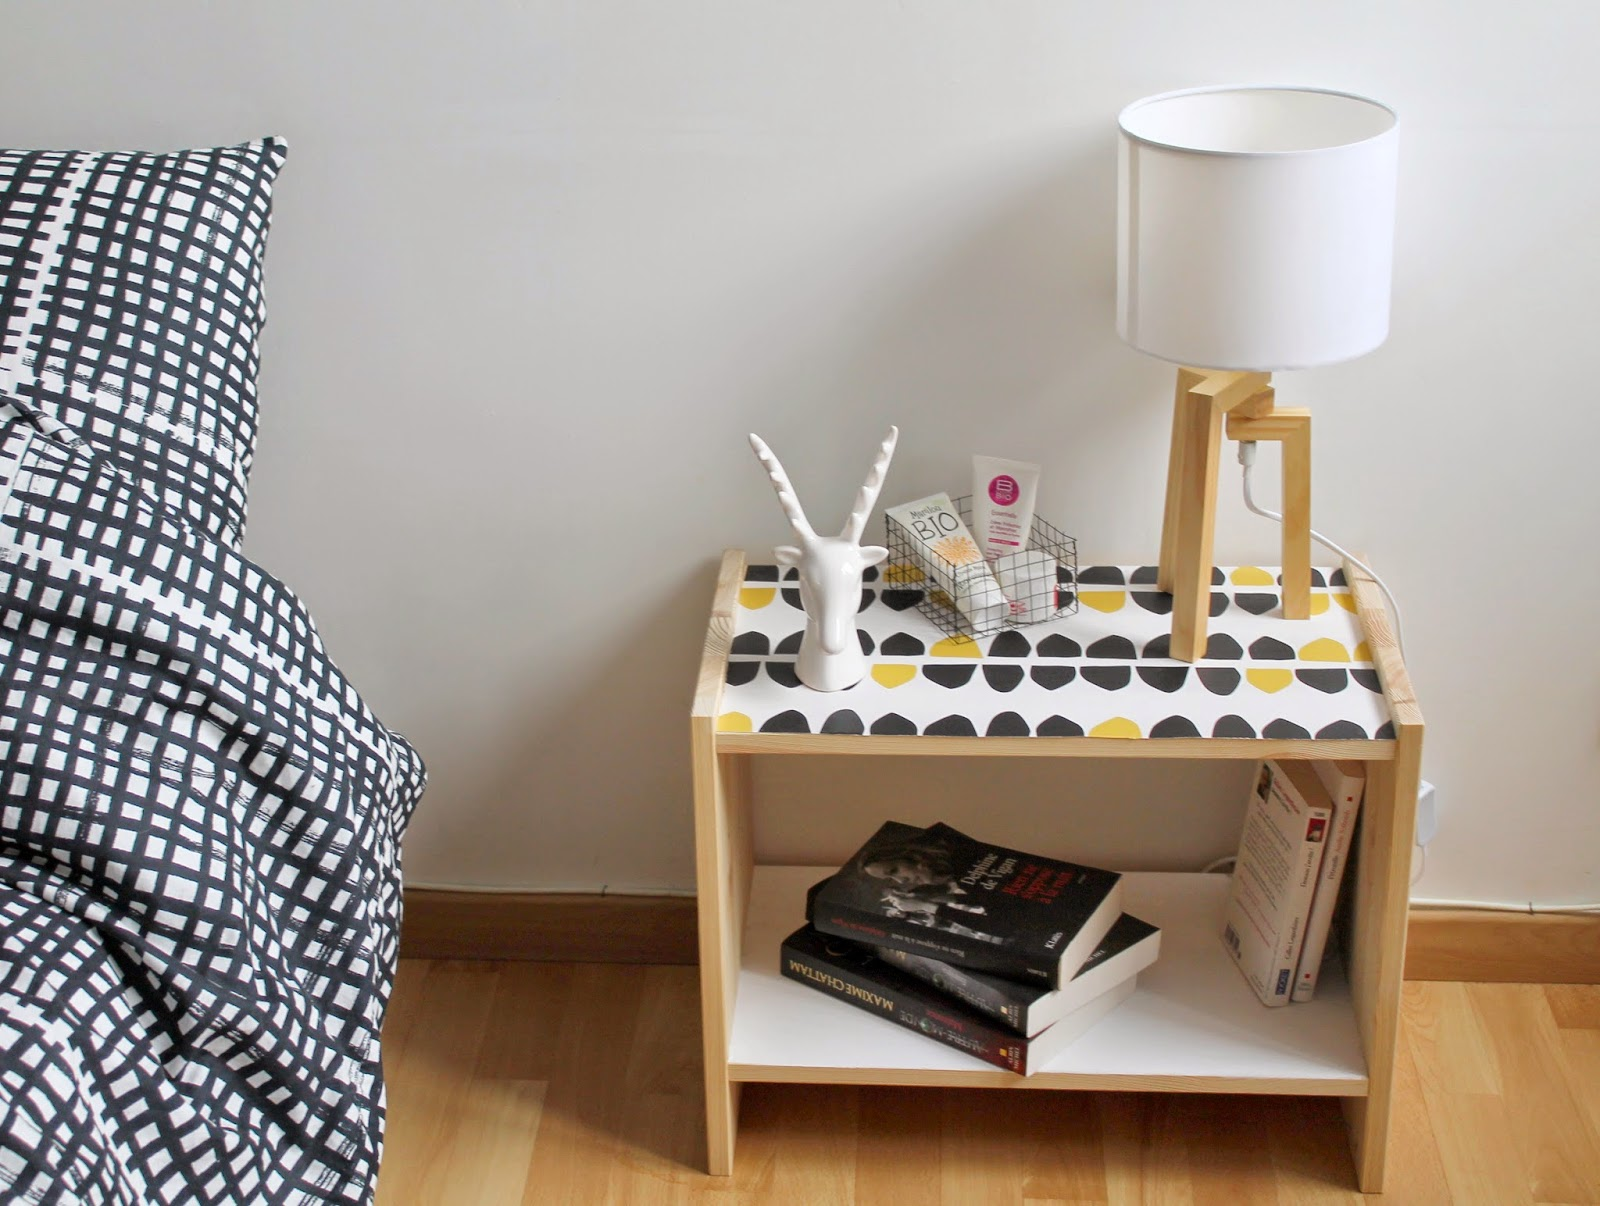 Diy customiser la table de chevet rast le bazar d for Table de chevet ikea